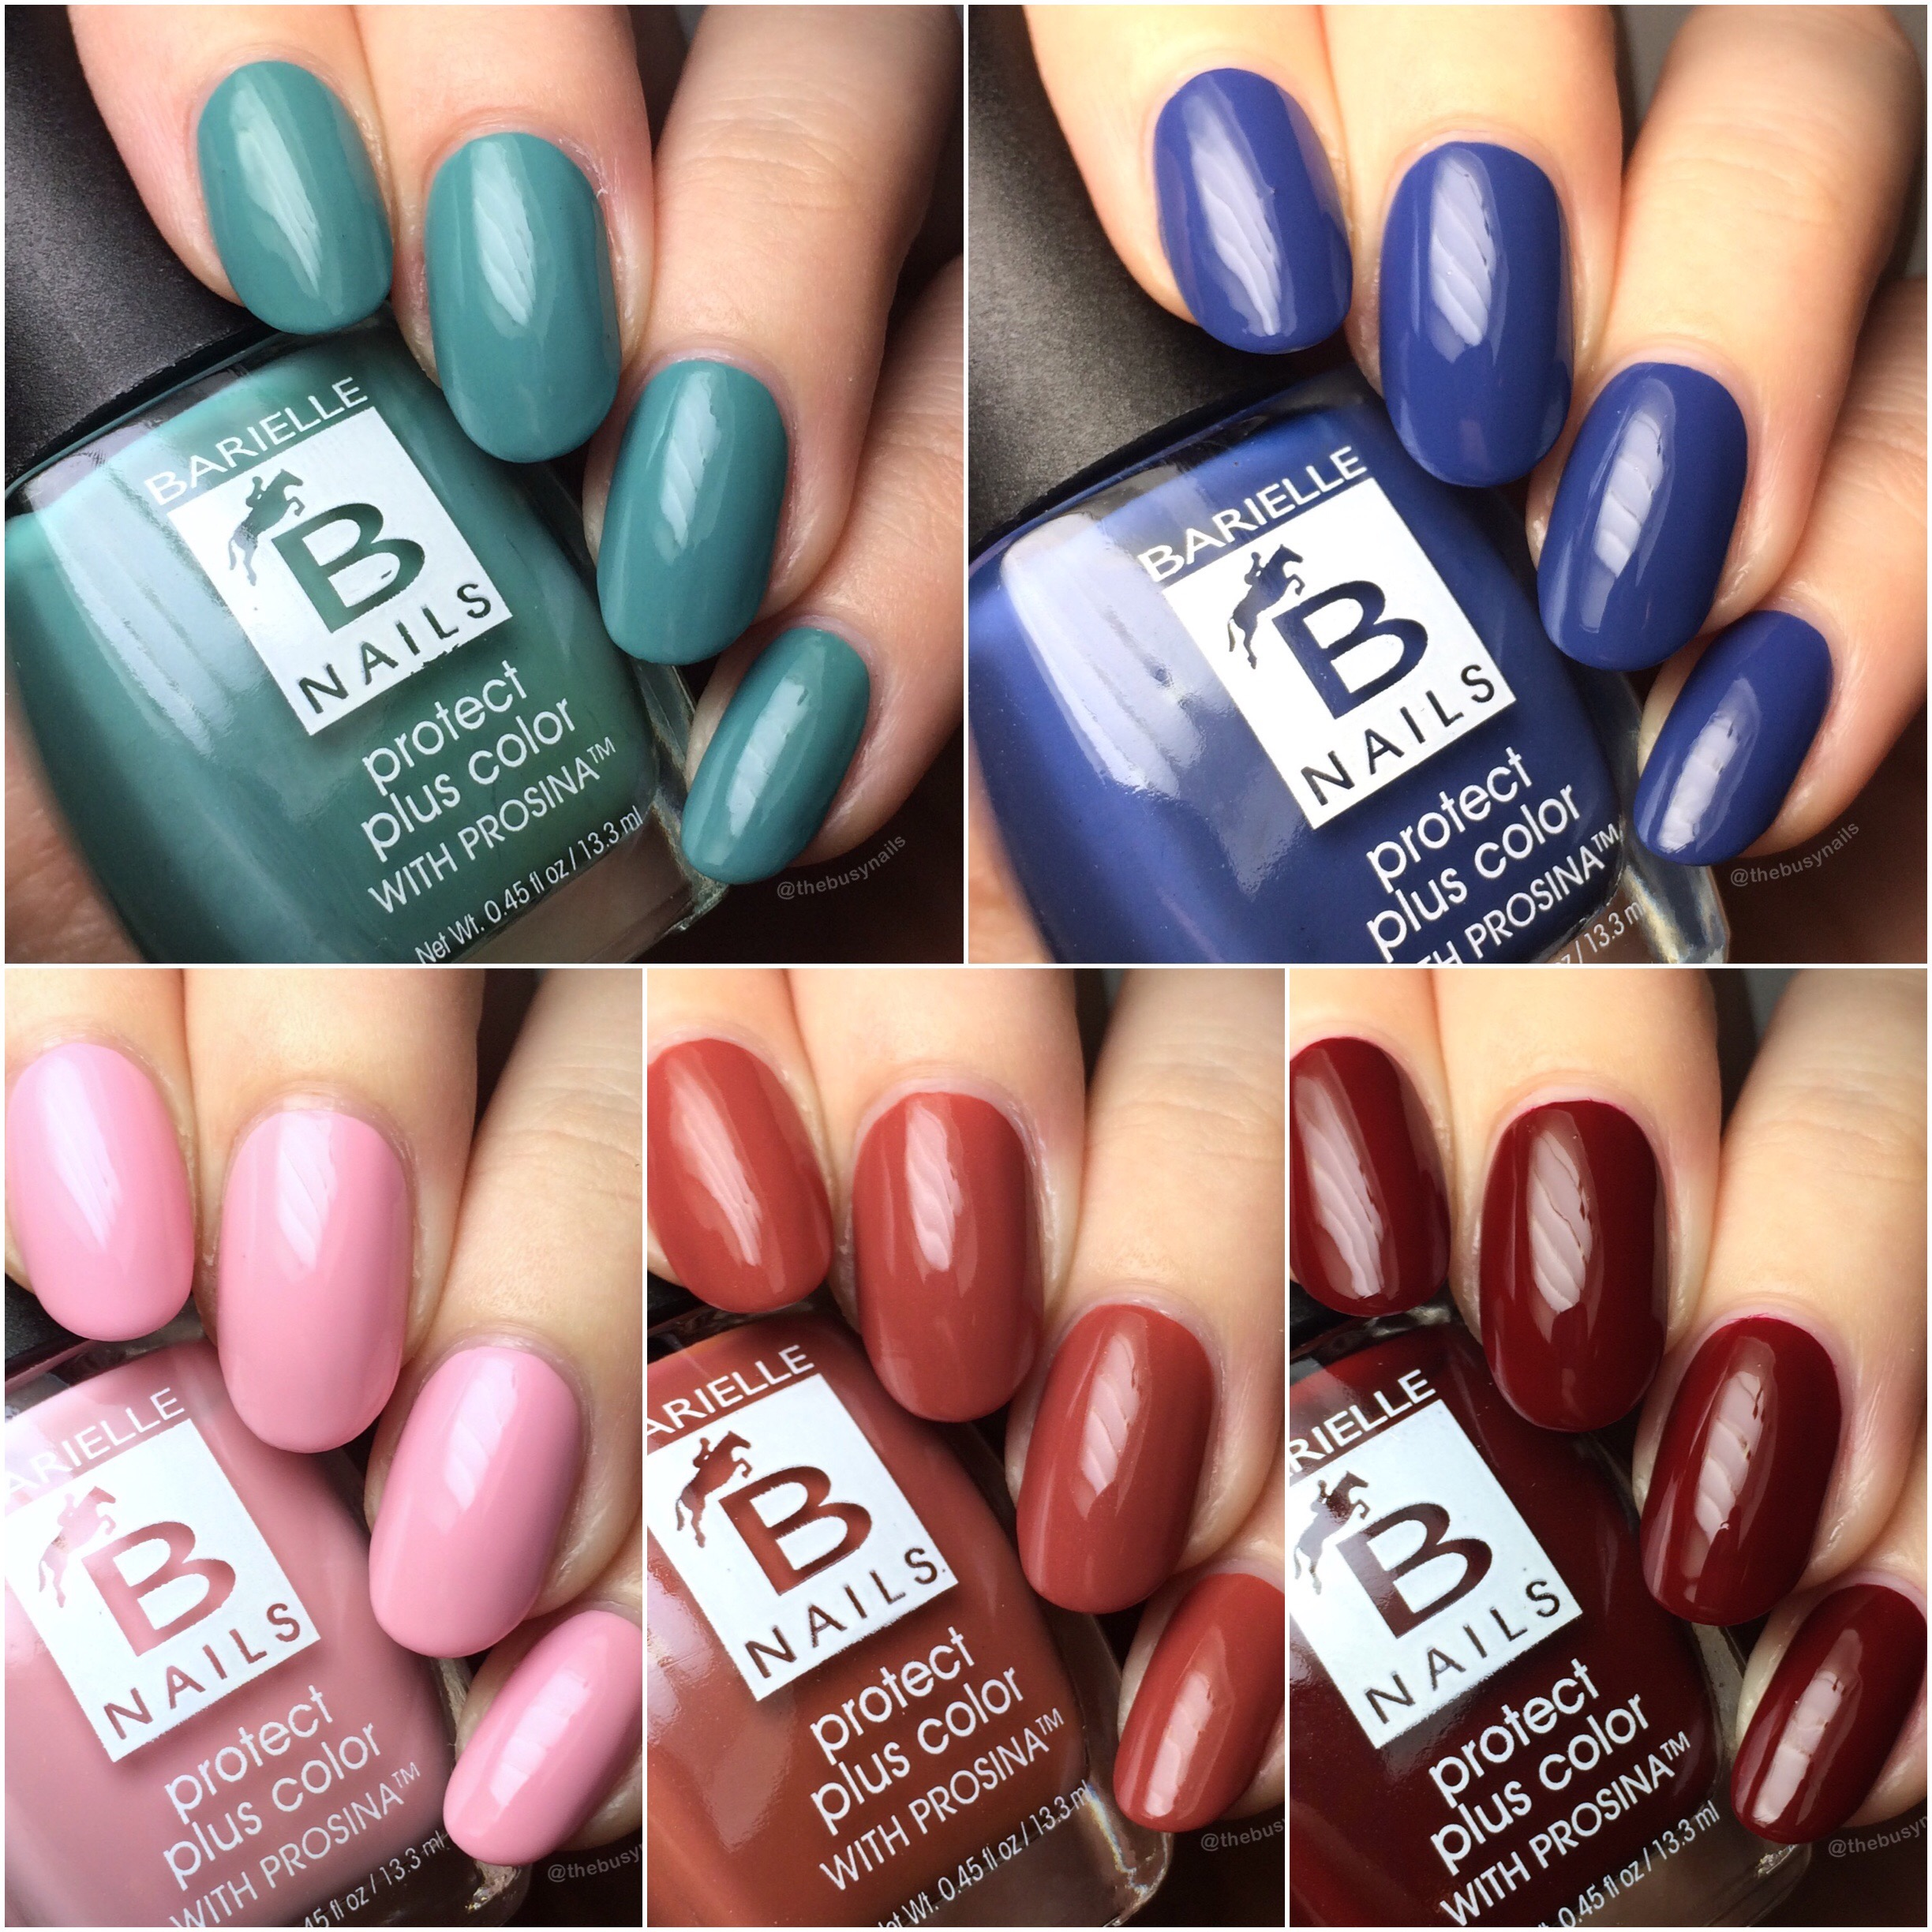 My Top 8 Indie Nail Polishes of 2016 — The Busy Nails